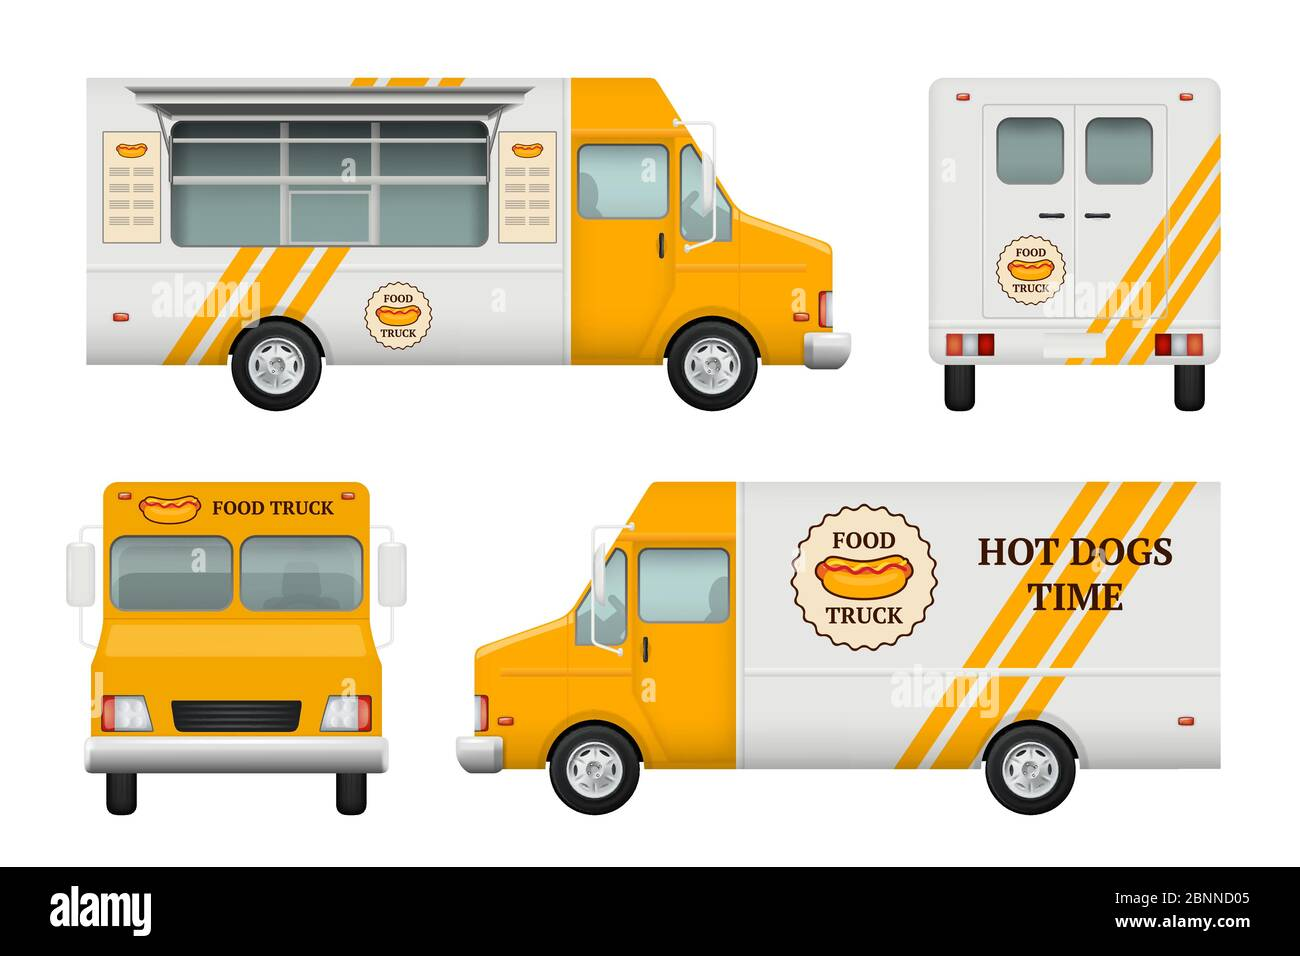 Mobile restaurant identity. Business tools of corporate style for fast catering kitchen and fast food truck vector logo blank templates Stock Vector